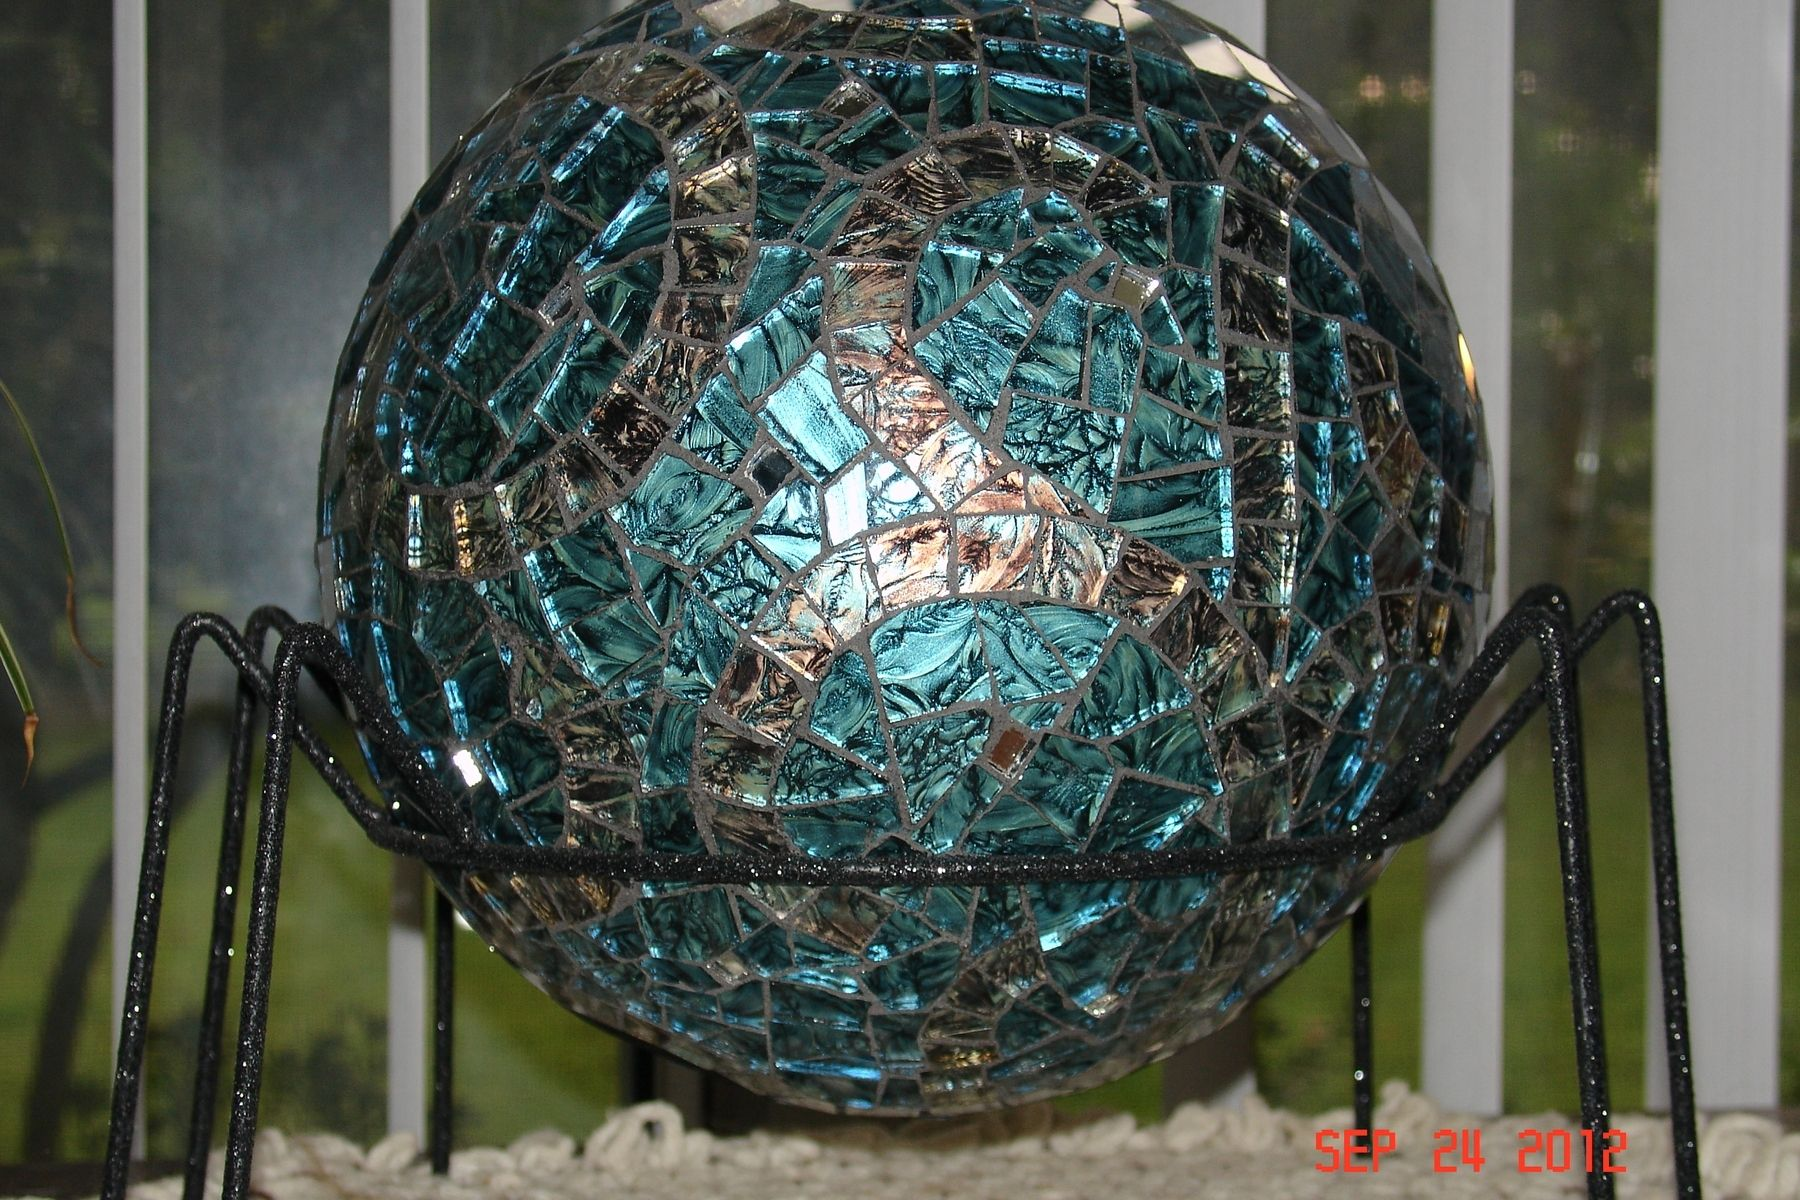 Hand Made Van Gogh Stained Glass Mosaic Gazing Ball Made